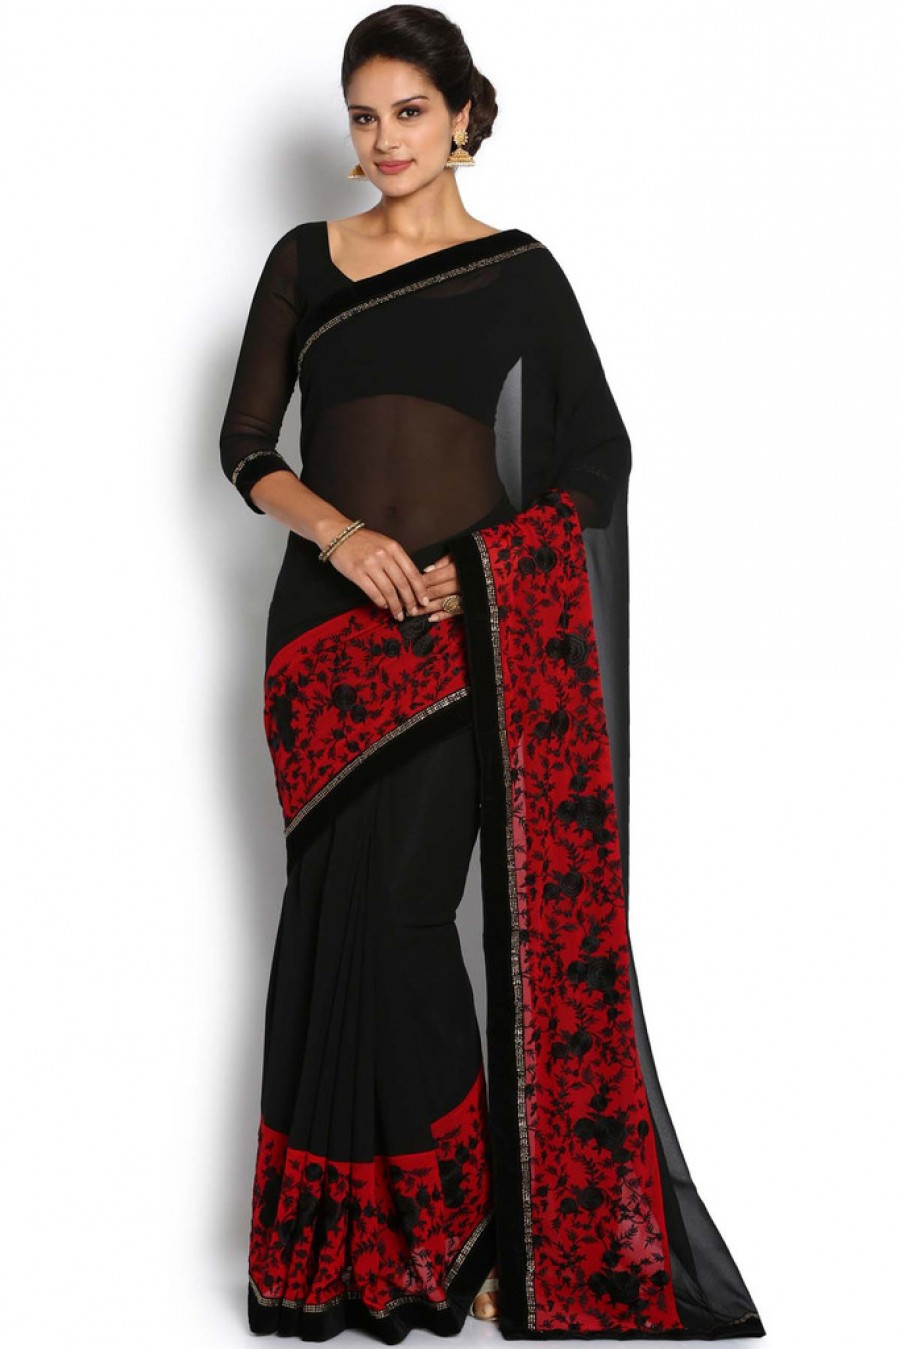 5 Gorgeous Black and Red Sari Look For Wedding Reception